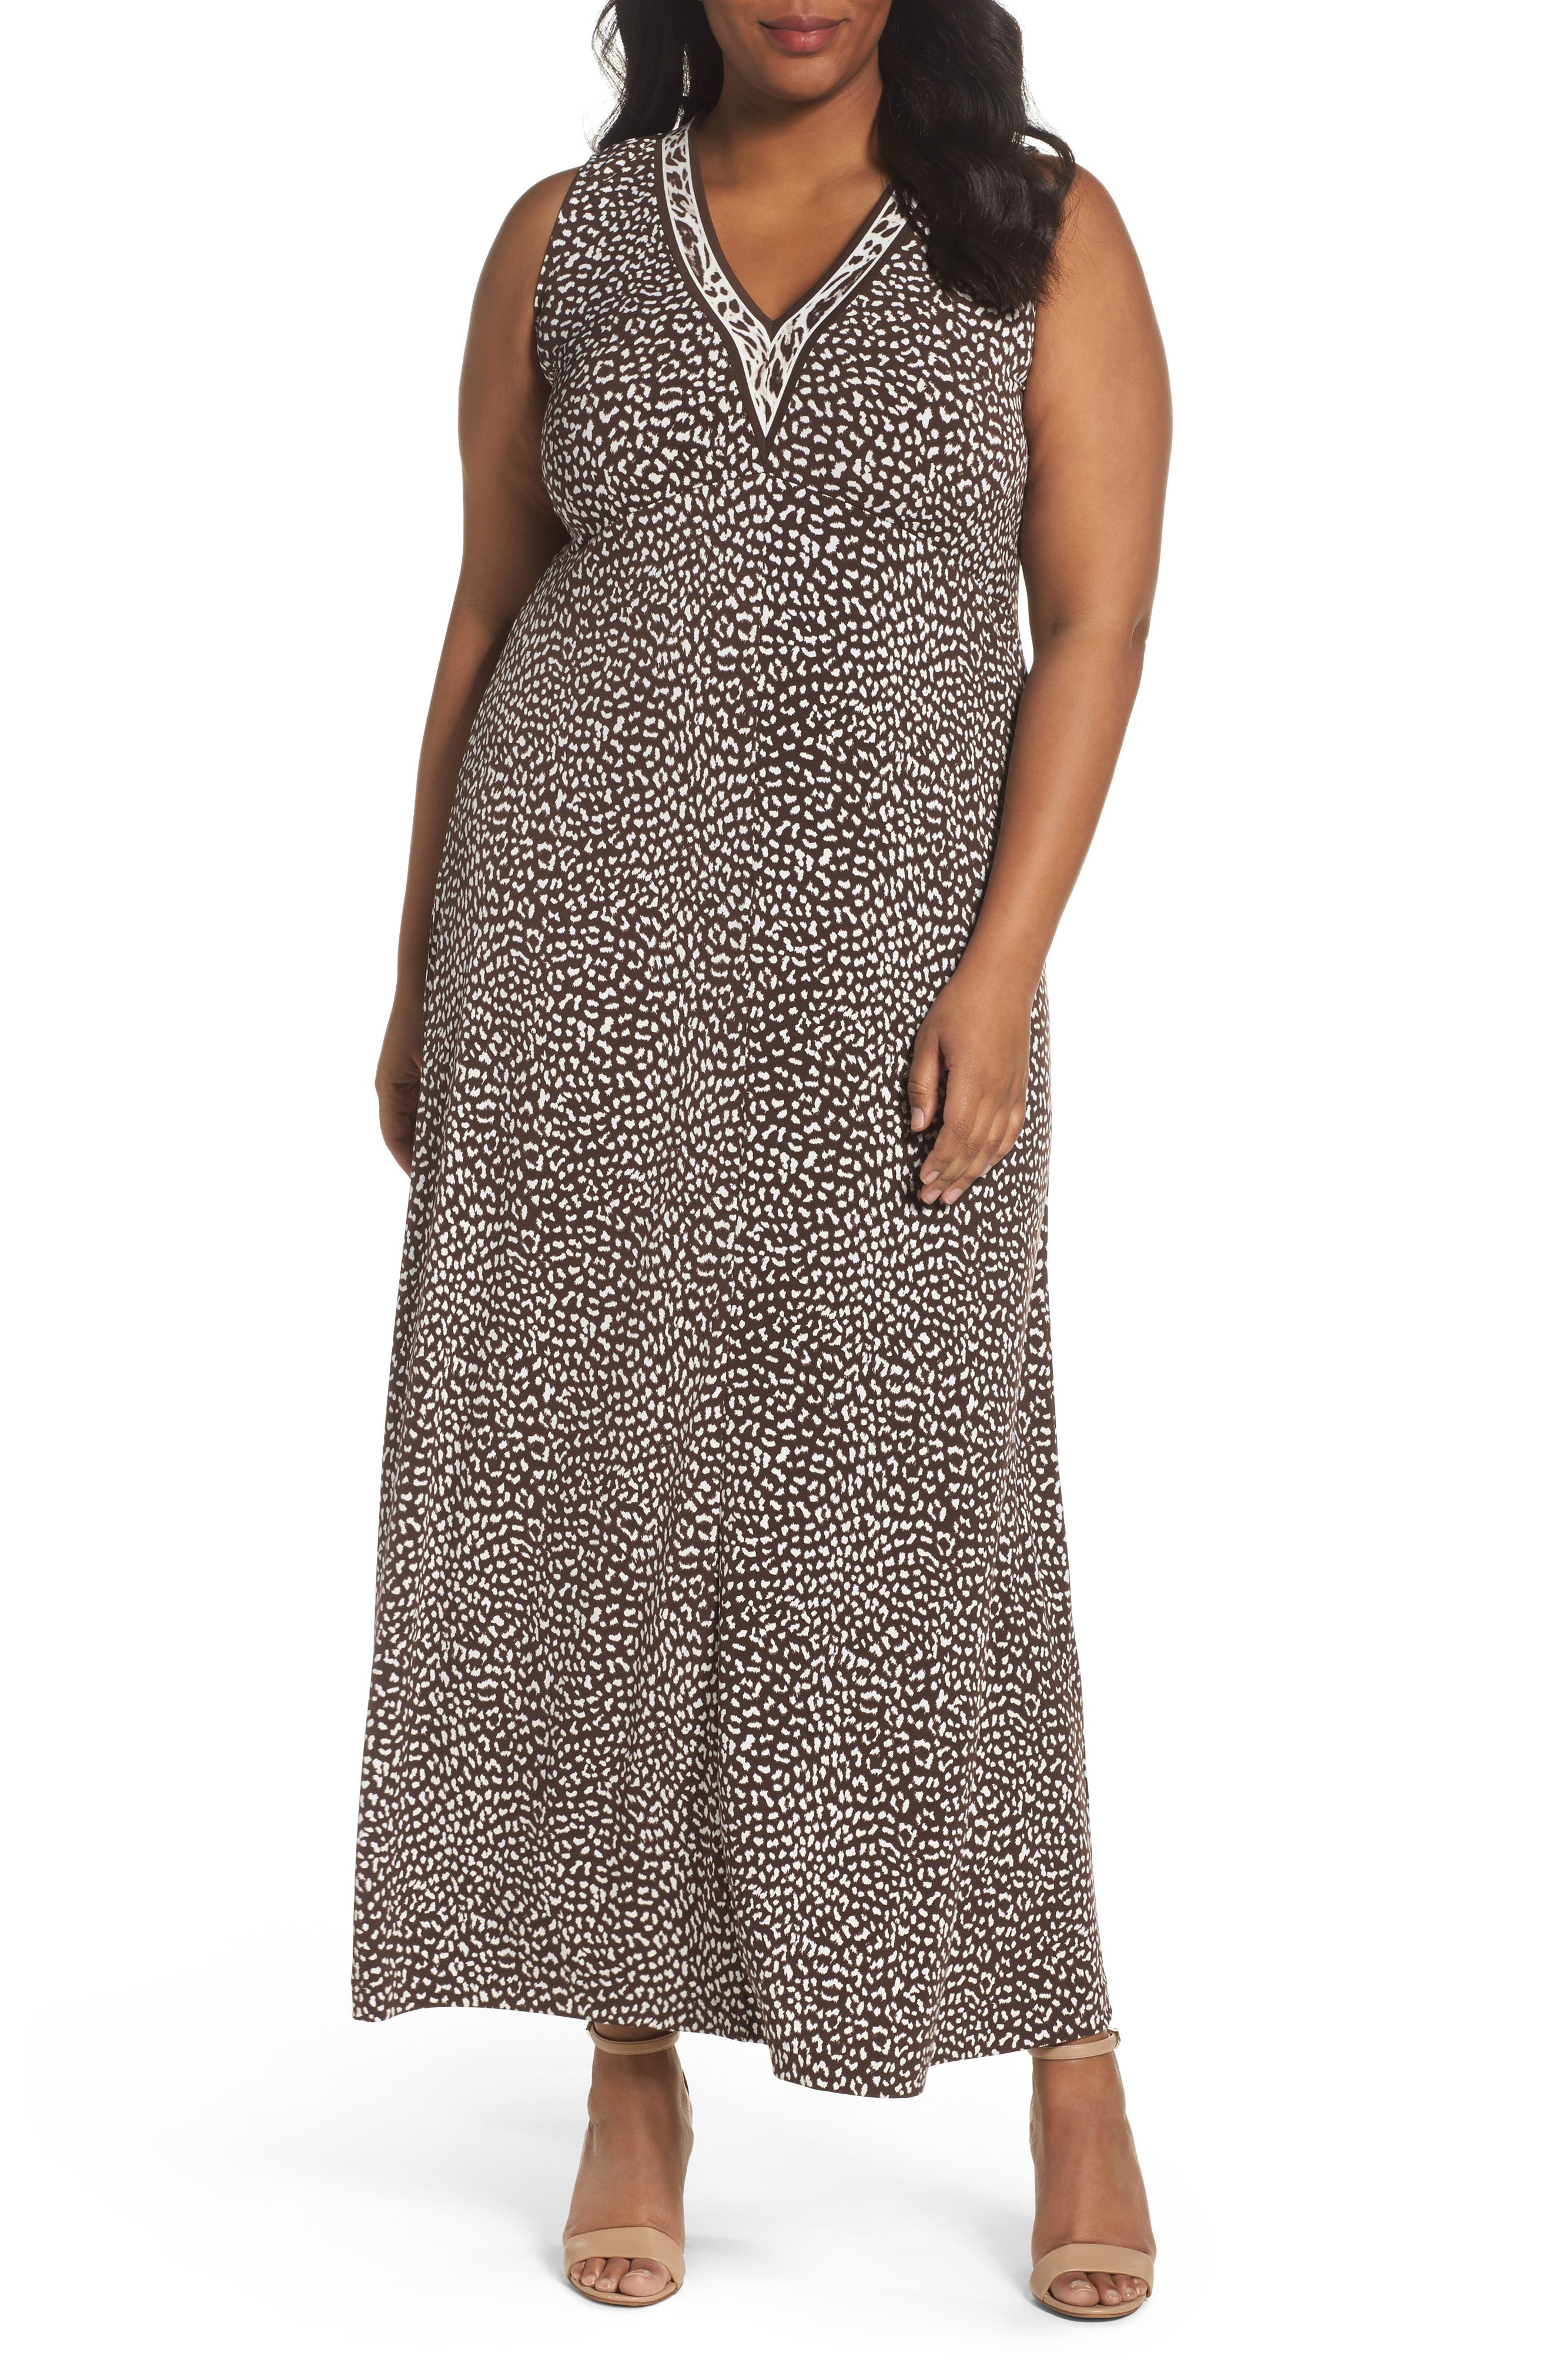 MICHAEL Michael Kors Animal Print Maxi Dress (Plus Size)